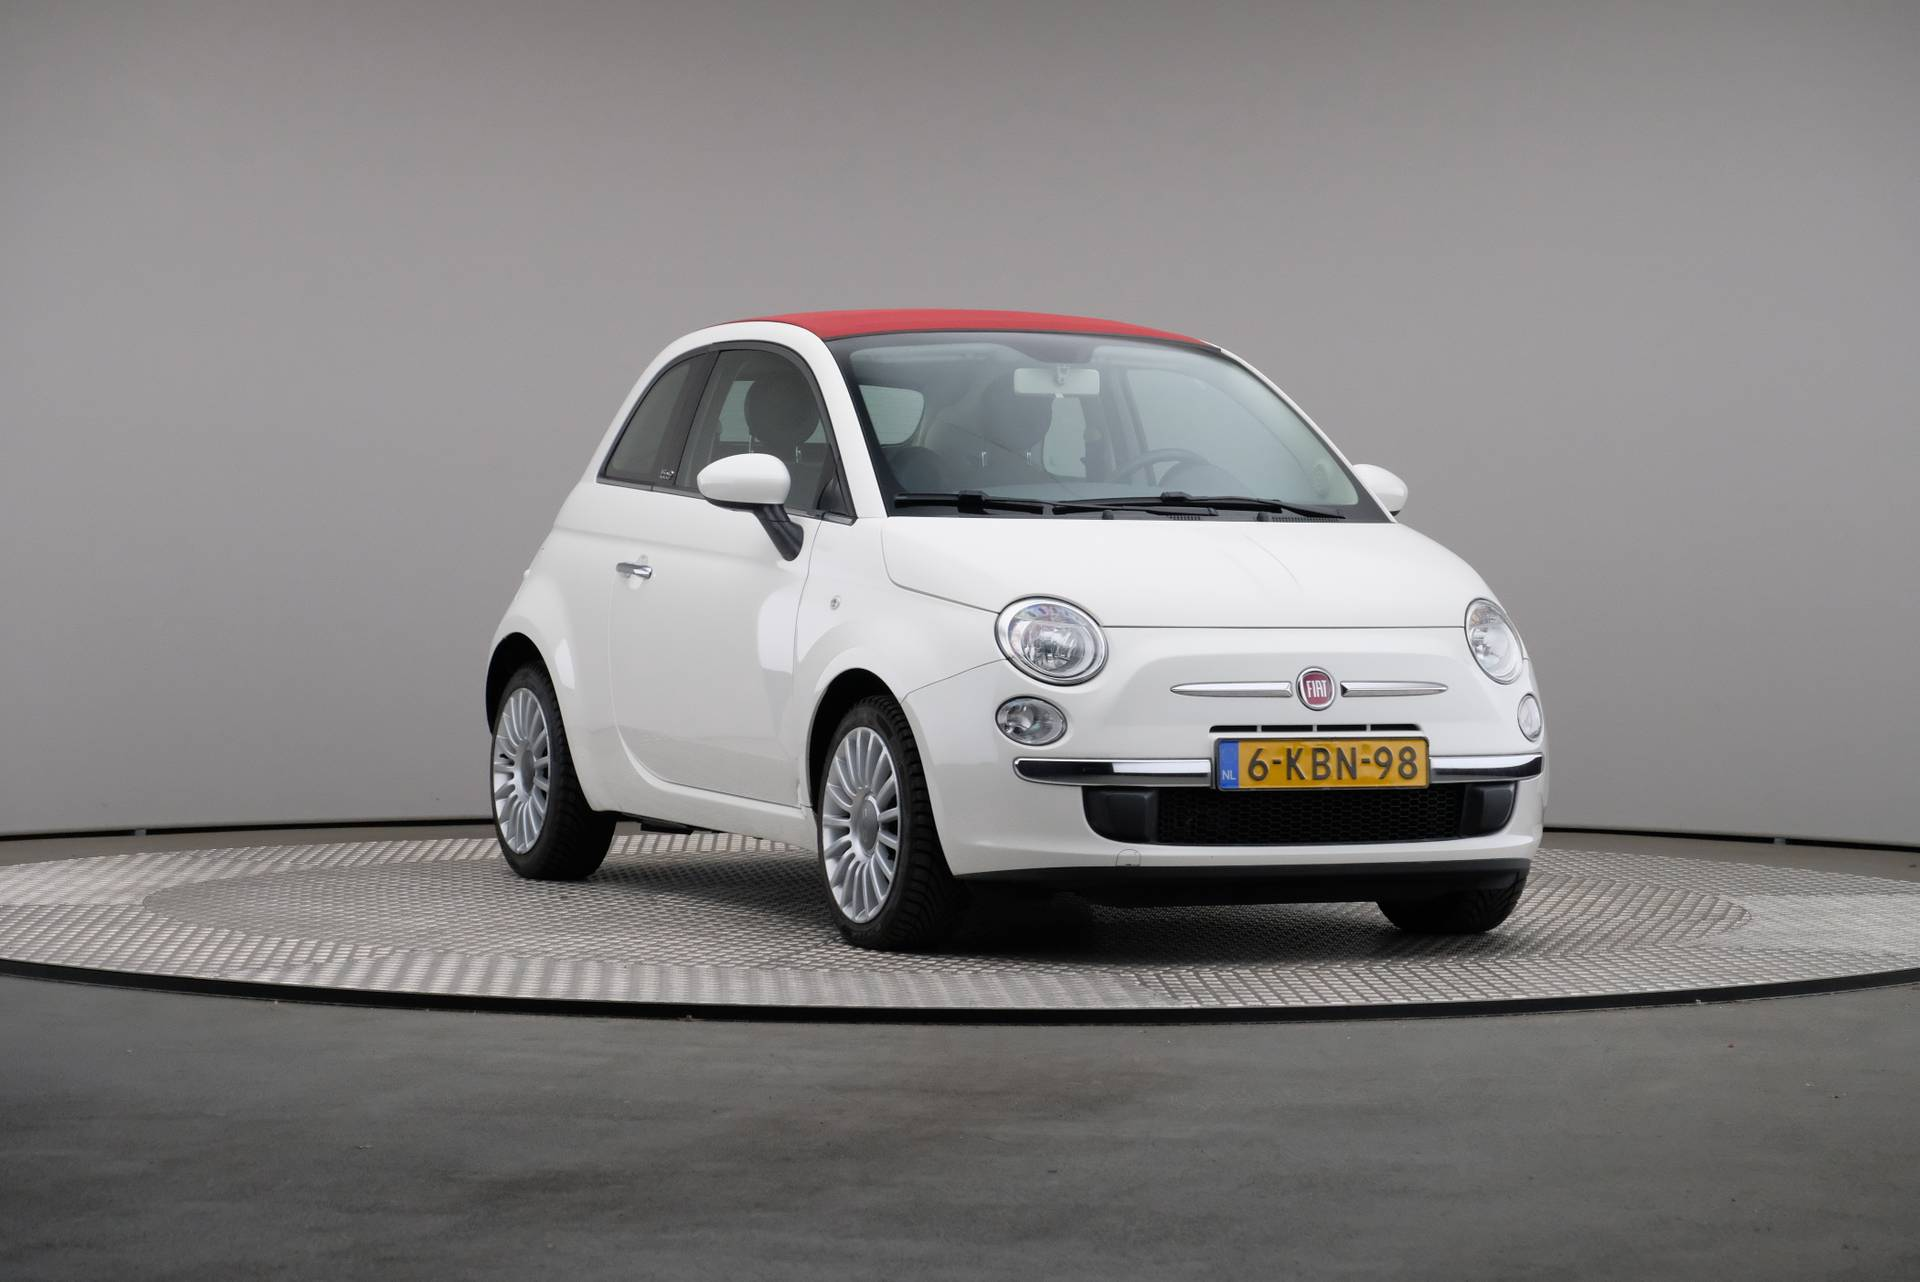 Fiat 500C TwinAir Turbo 85 Lounge, Airconditioning, 360-image30